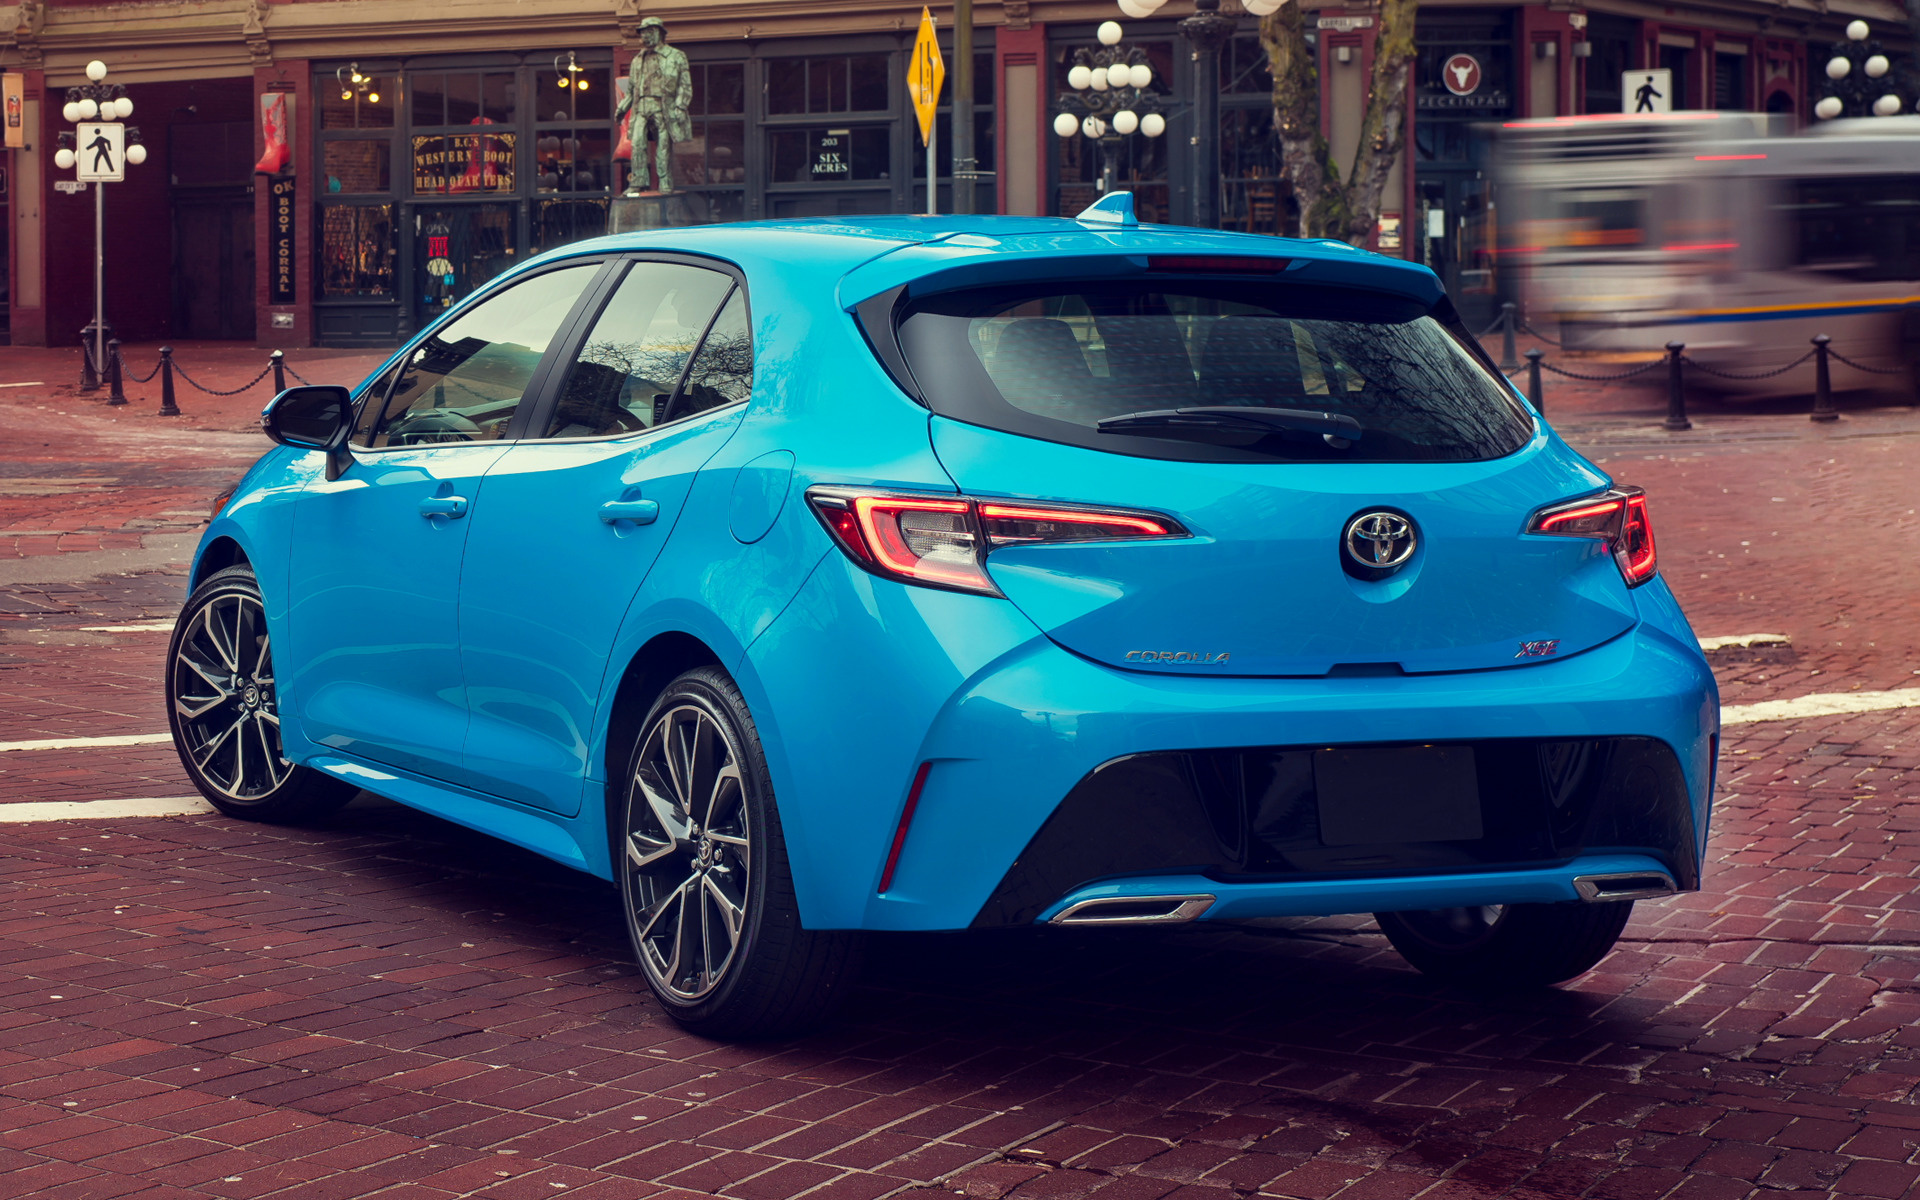 Toyota Corolla Xse Hatchback Car Wallpaper